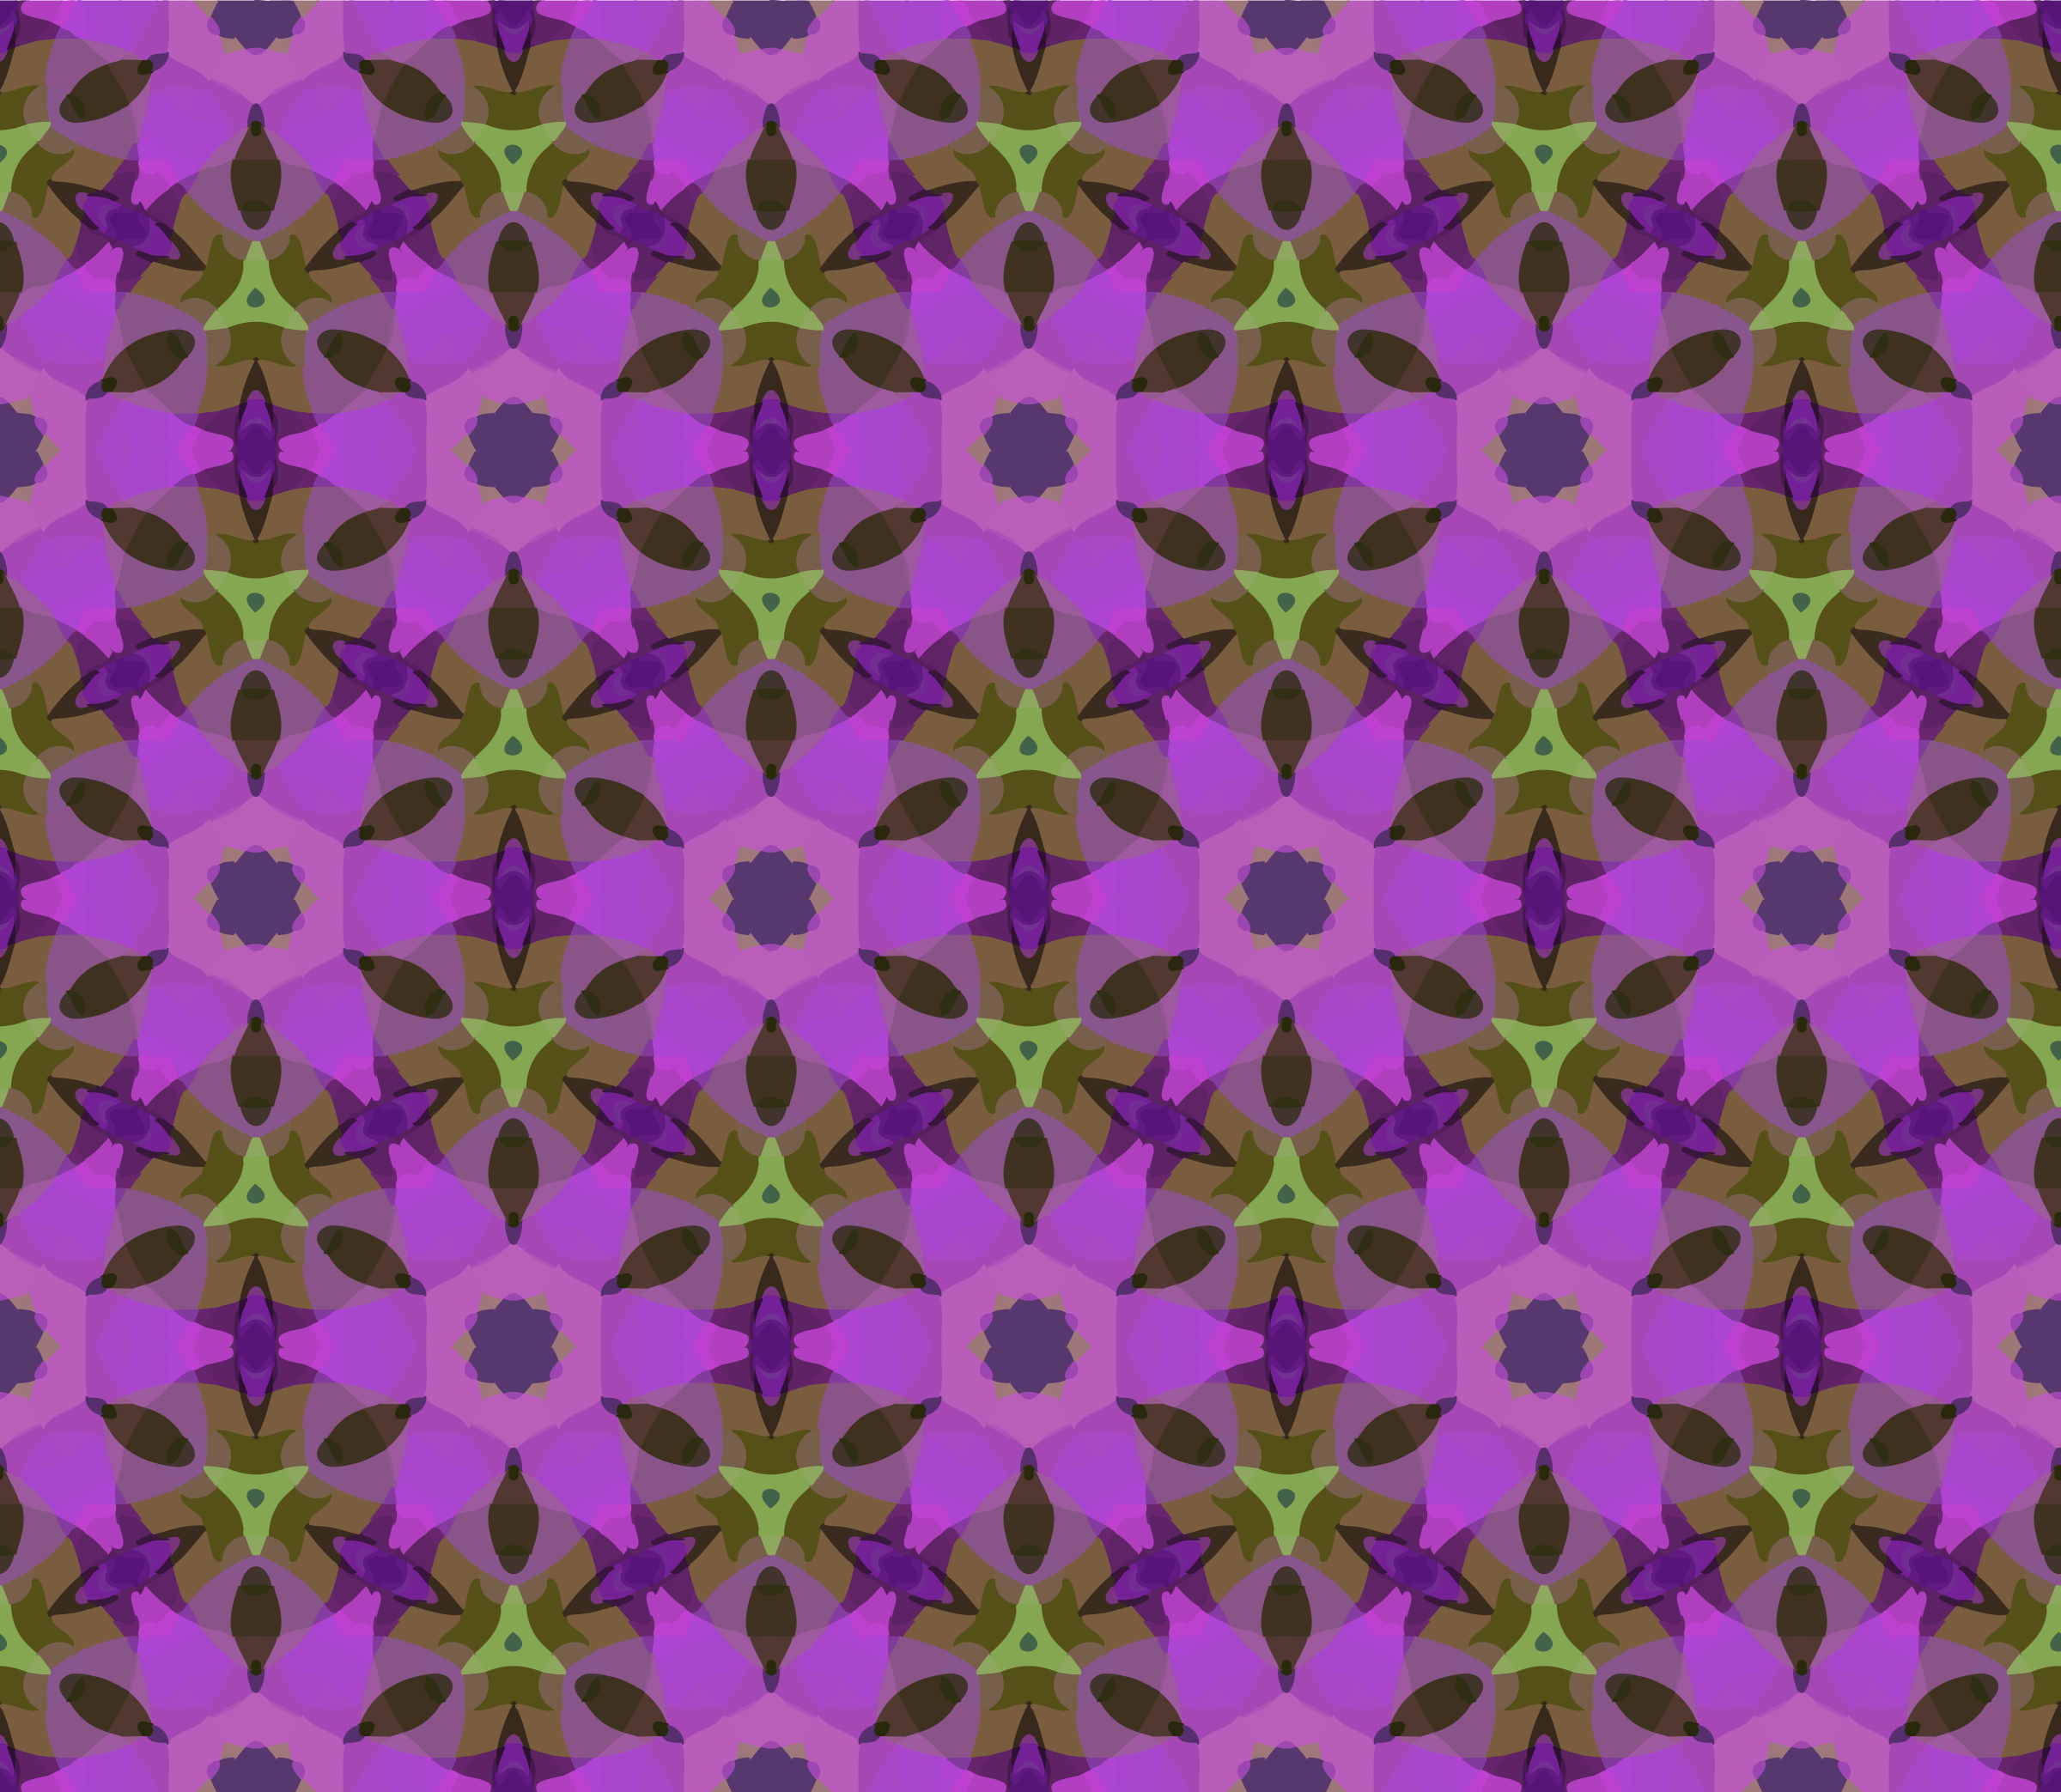 Background pattern 148 (colour 4) by Firkin